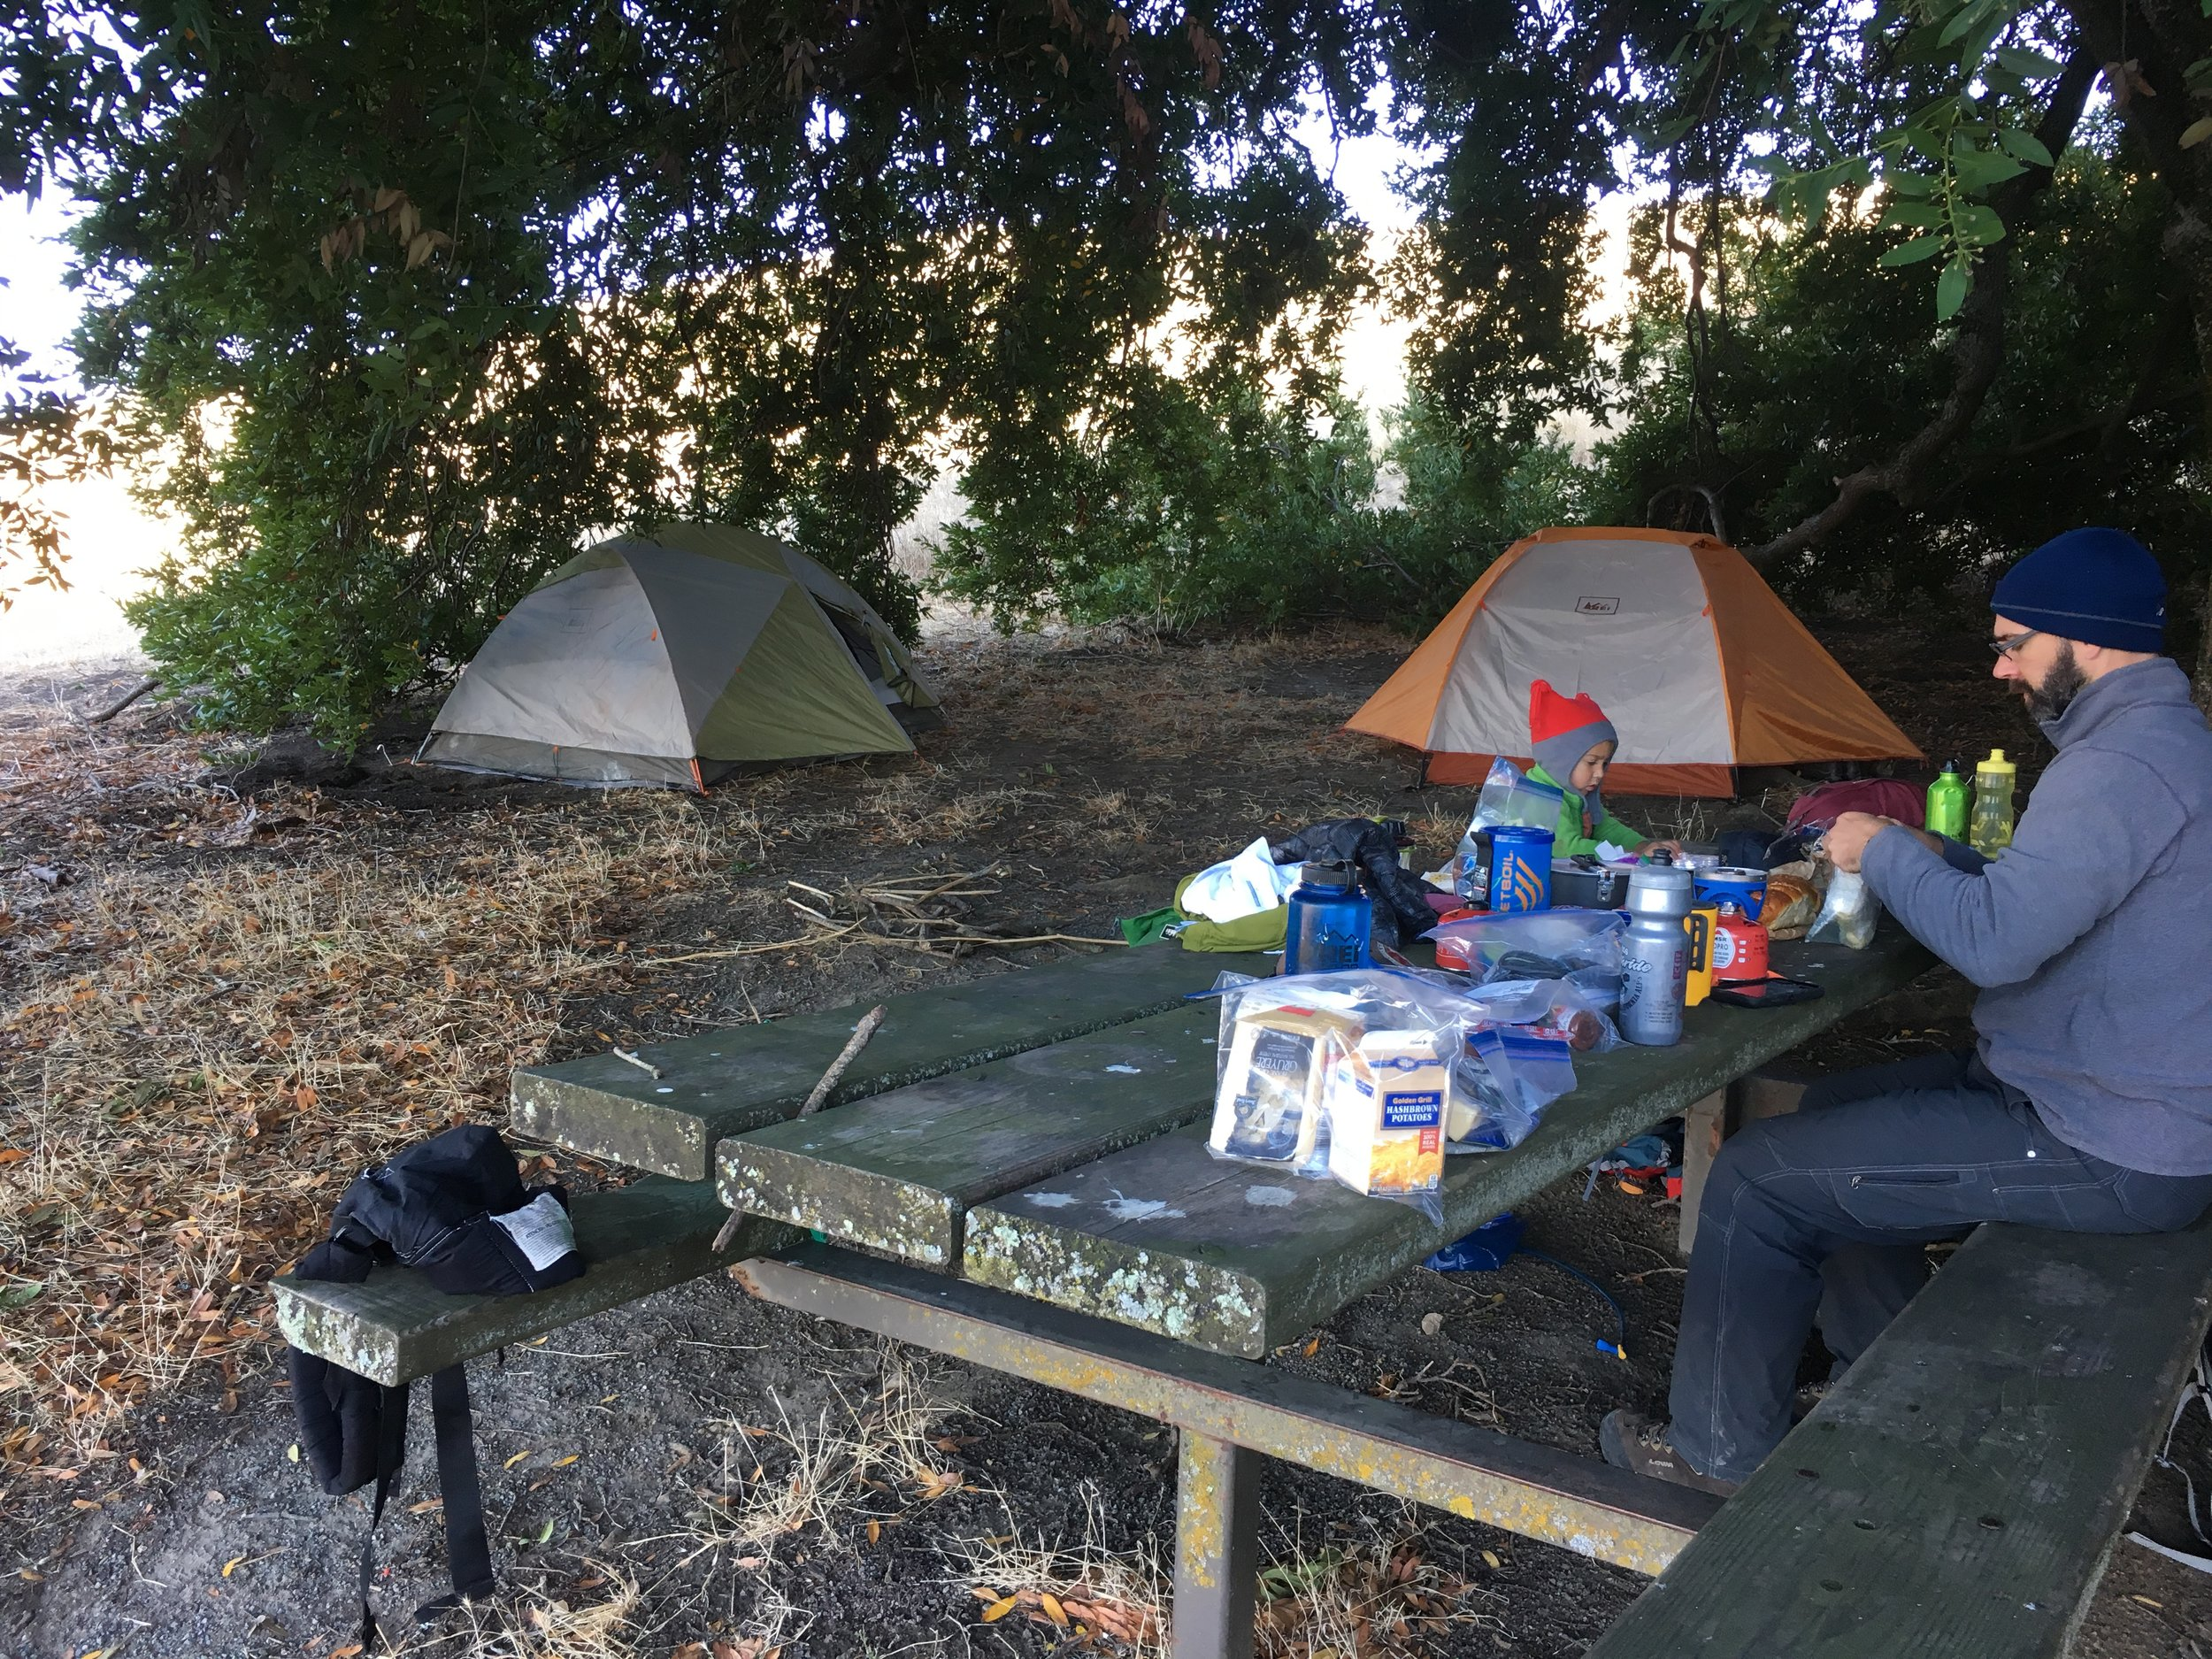 Campsite #4: Eagle Spring, Mission Peak